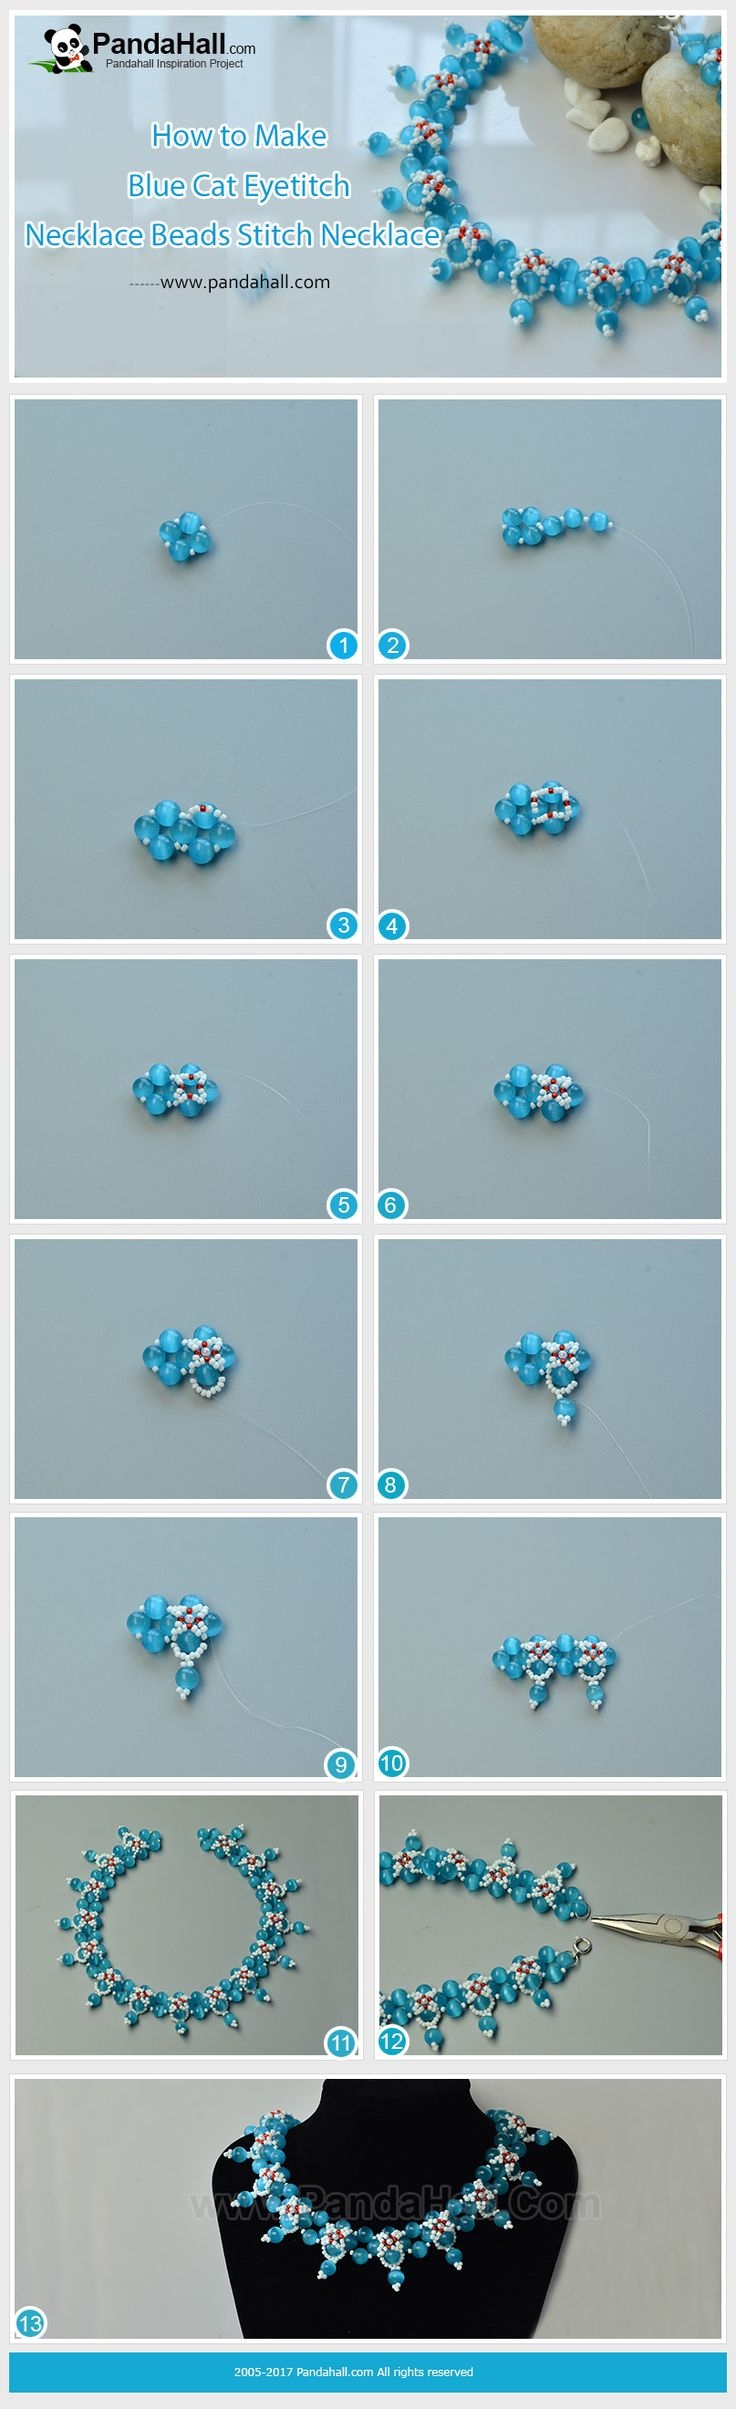 How to Make Blue Cat Eye Beads Stitch Necklace The main materials of the necklace are imitation pearl acrylic beads, seed beads and cat eye beads. With some smart stitch skills, you can get a very gorgeous necklace!